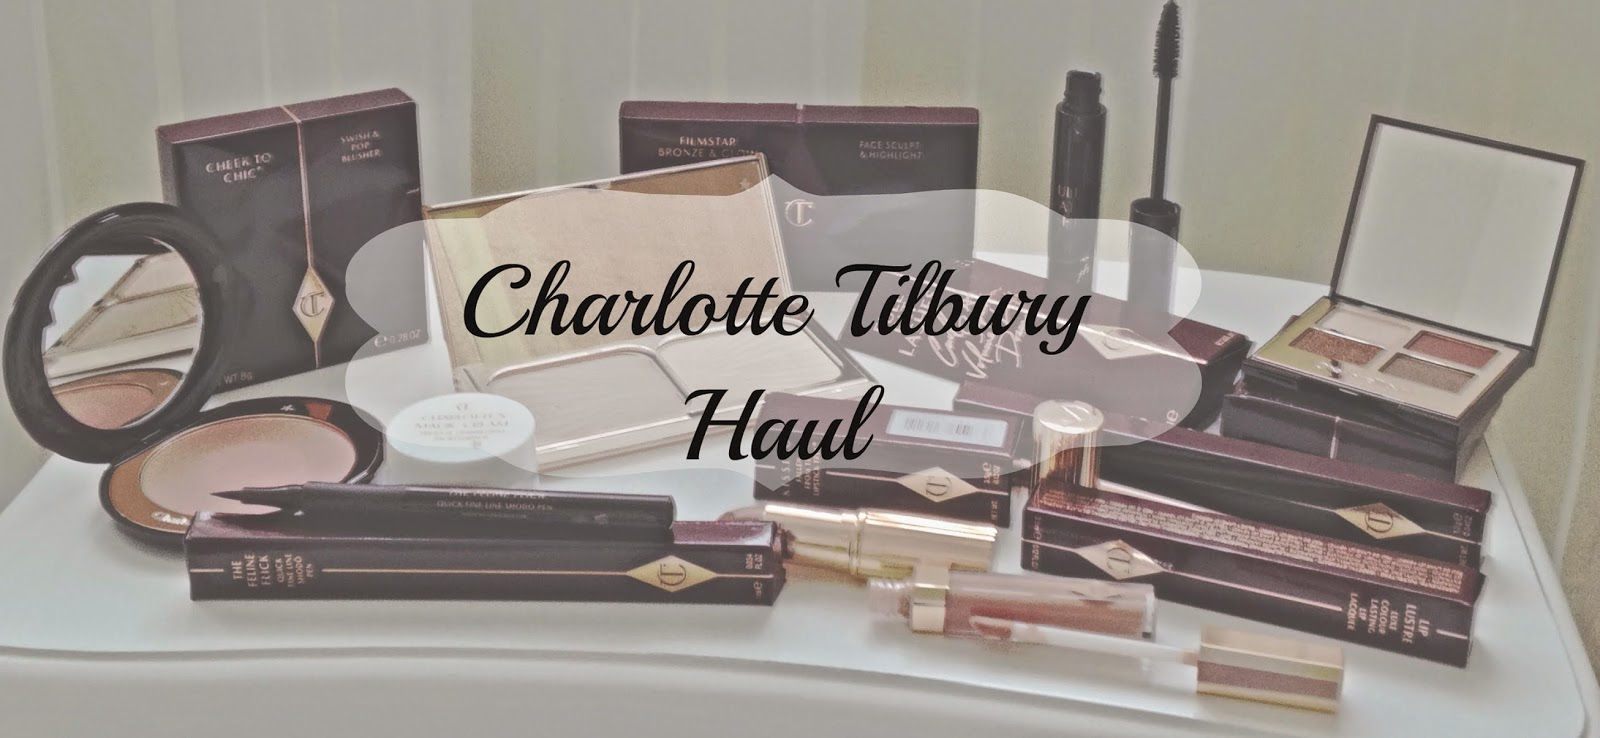 Filmstar Bronze and Glow, The Dolce Vita, Charlotte Tilbury Blog Post